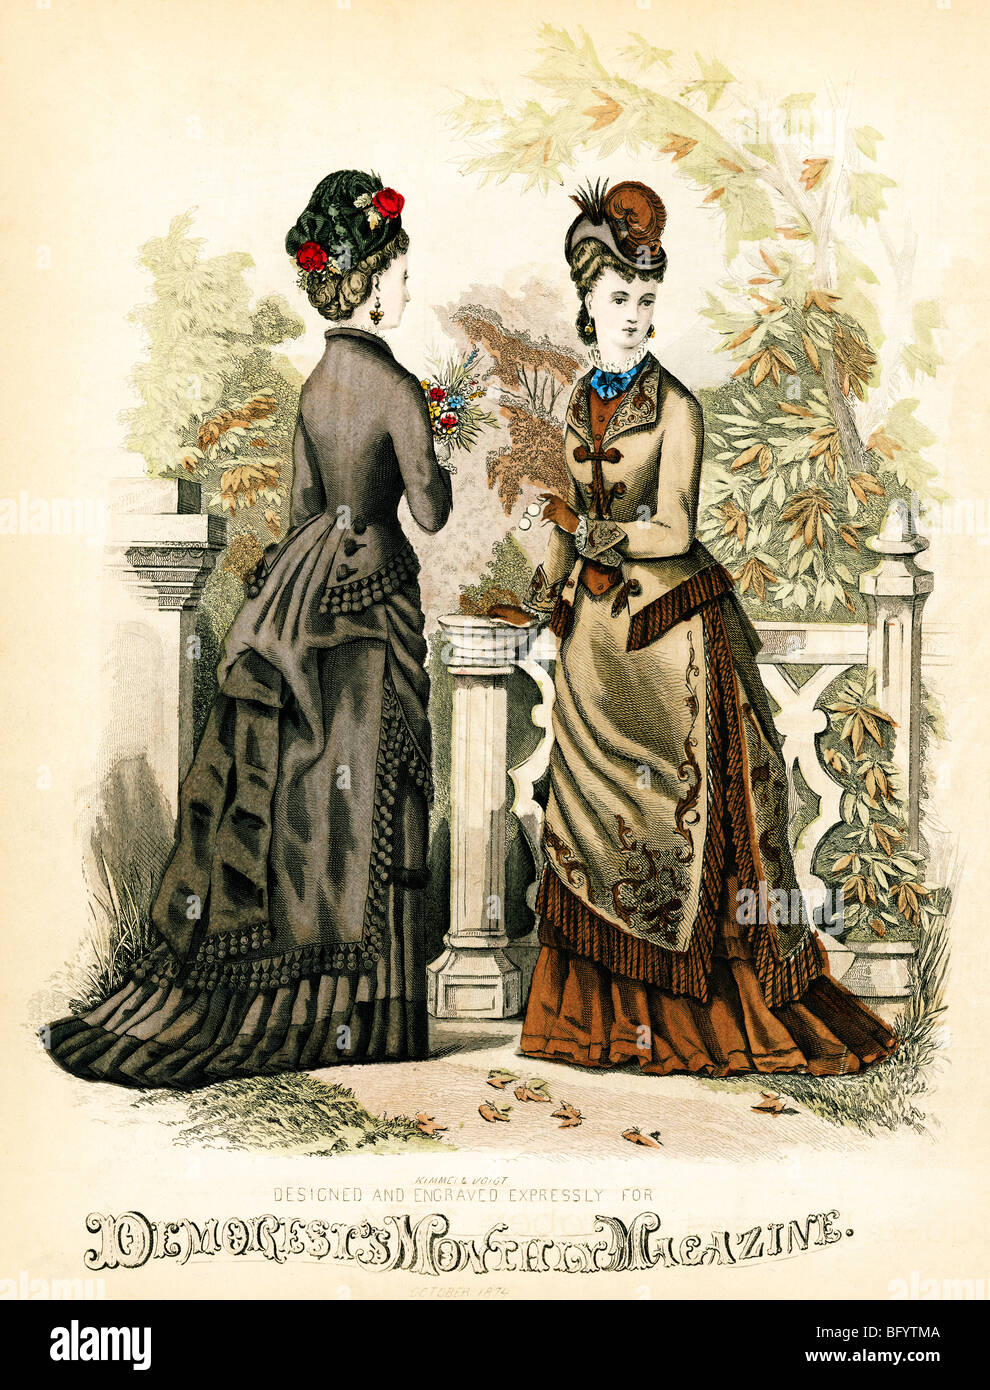 Demorests, October 1874, engraving from the American monthly ladies fashion magazine famous for dressmaking patterns - Stock Image